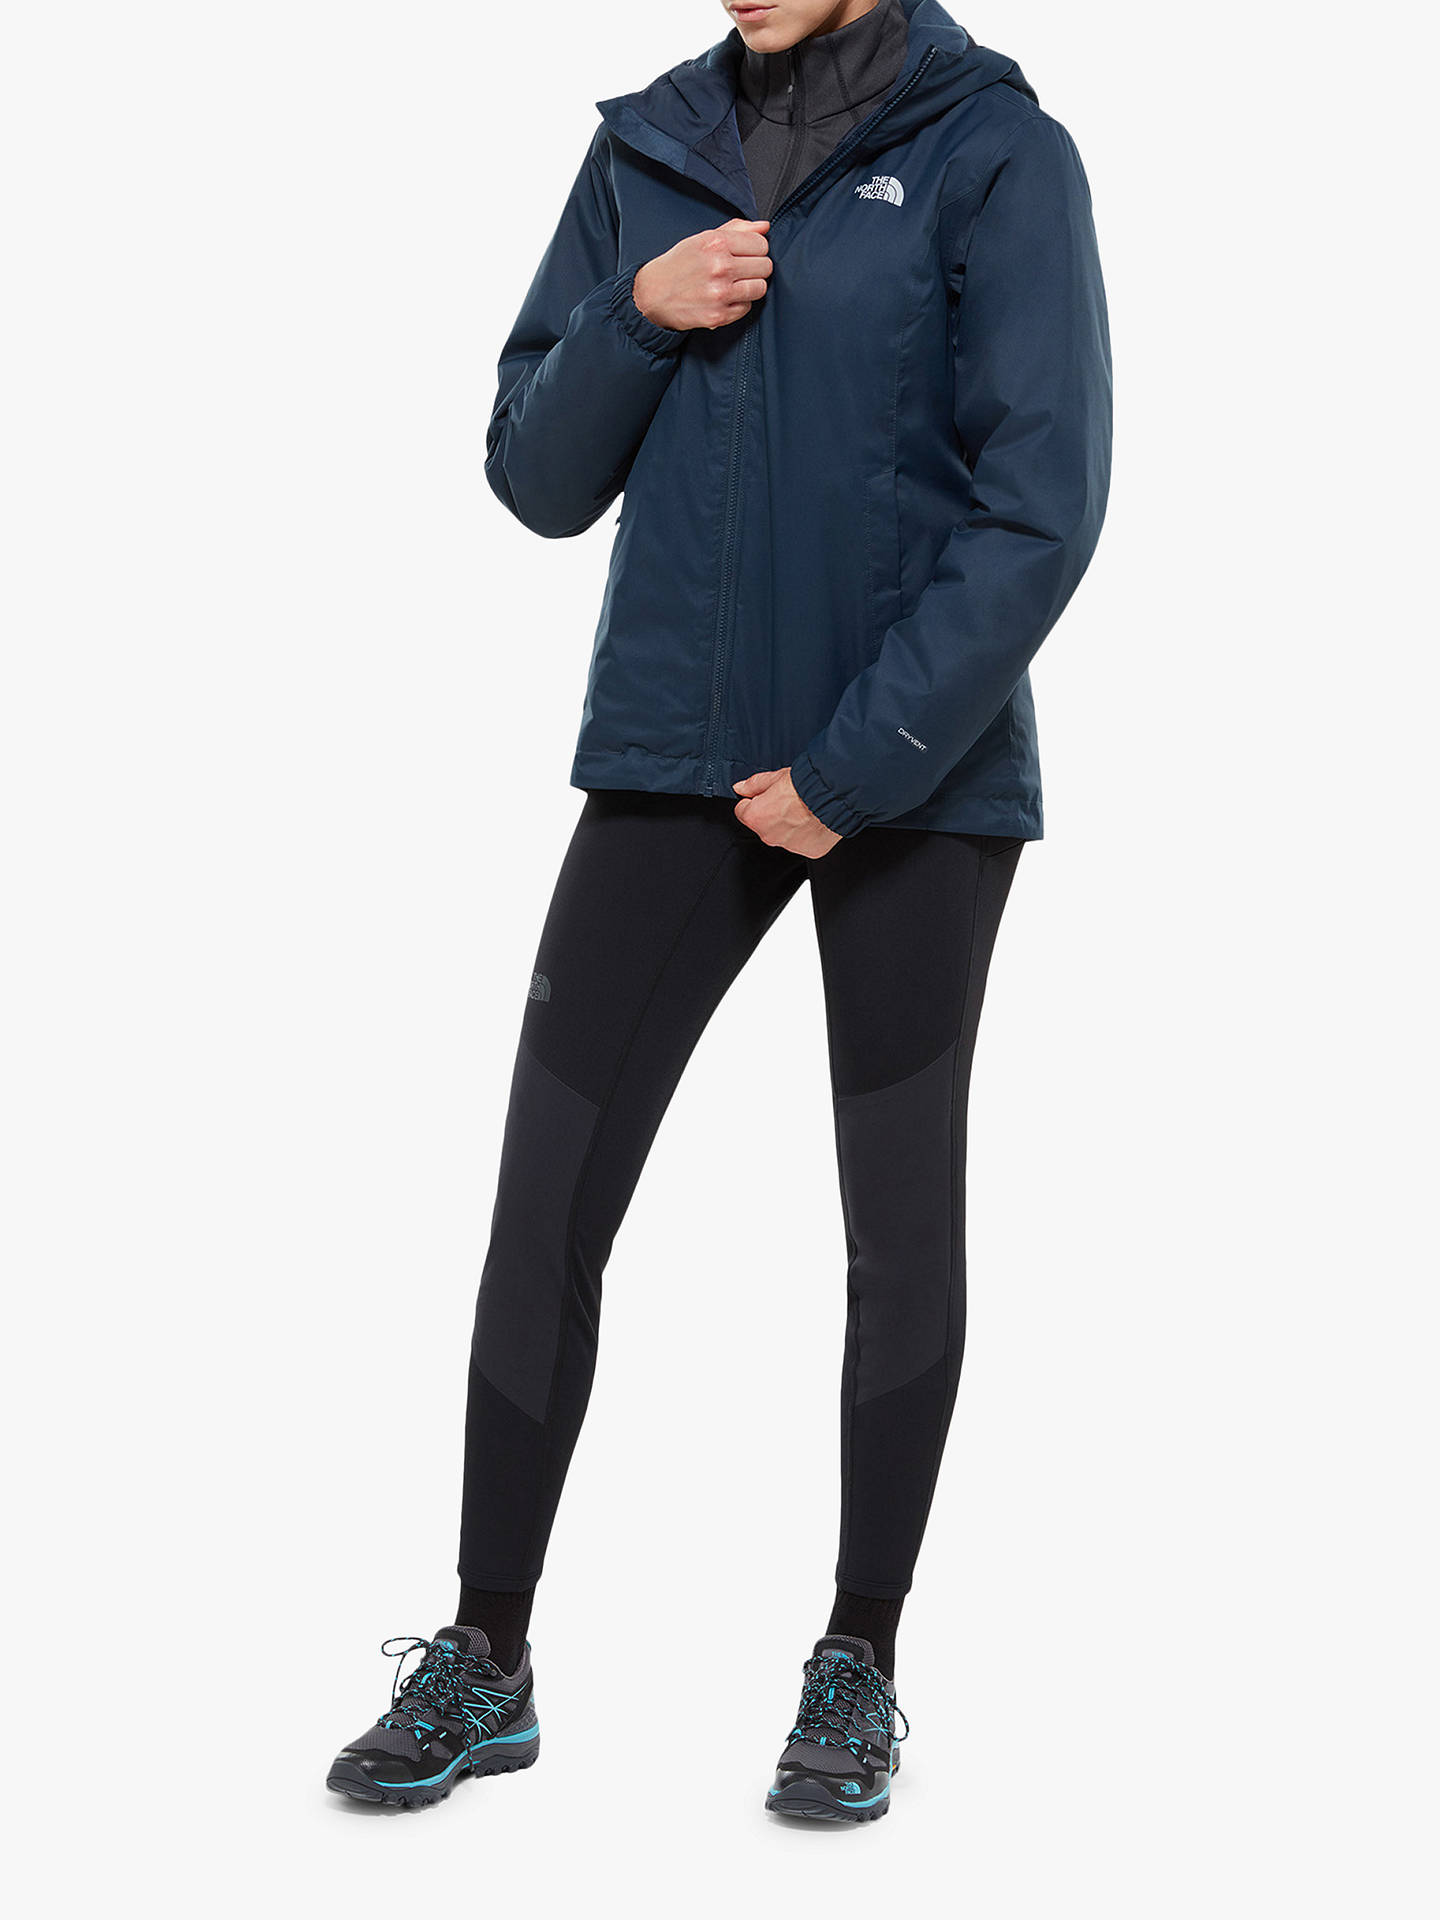 BuyThe North Face Quest Women's Insulated Waterproof Jacket, Navy, M Online at johnlewis.com